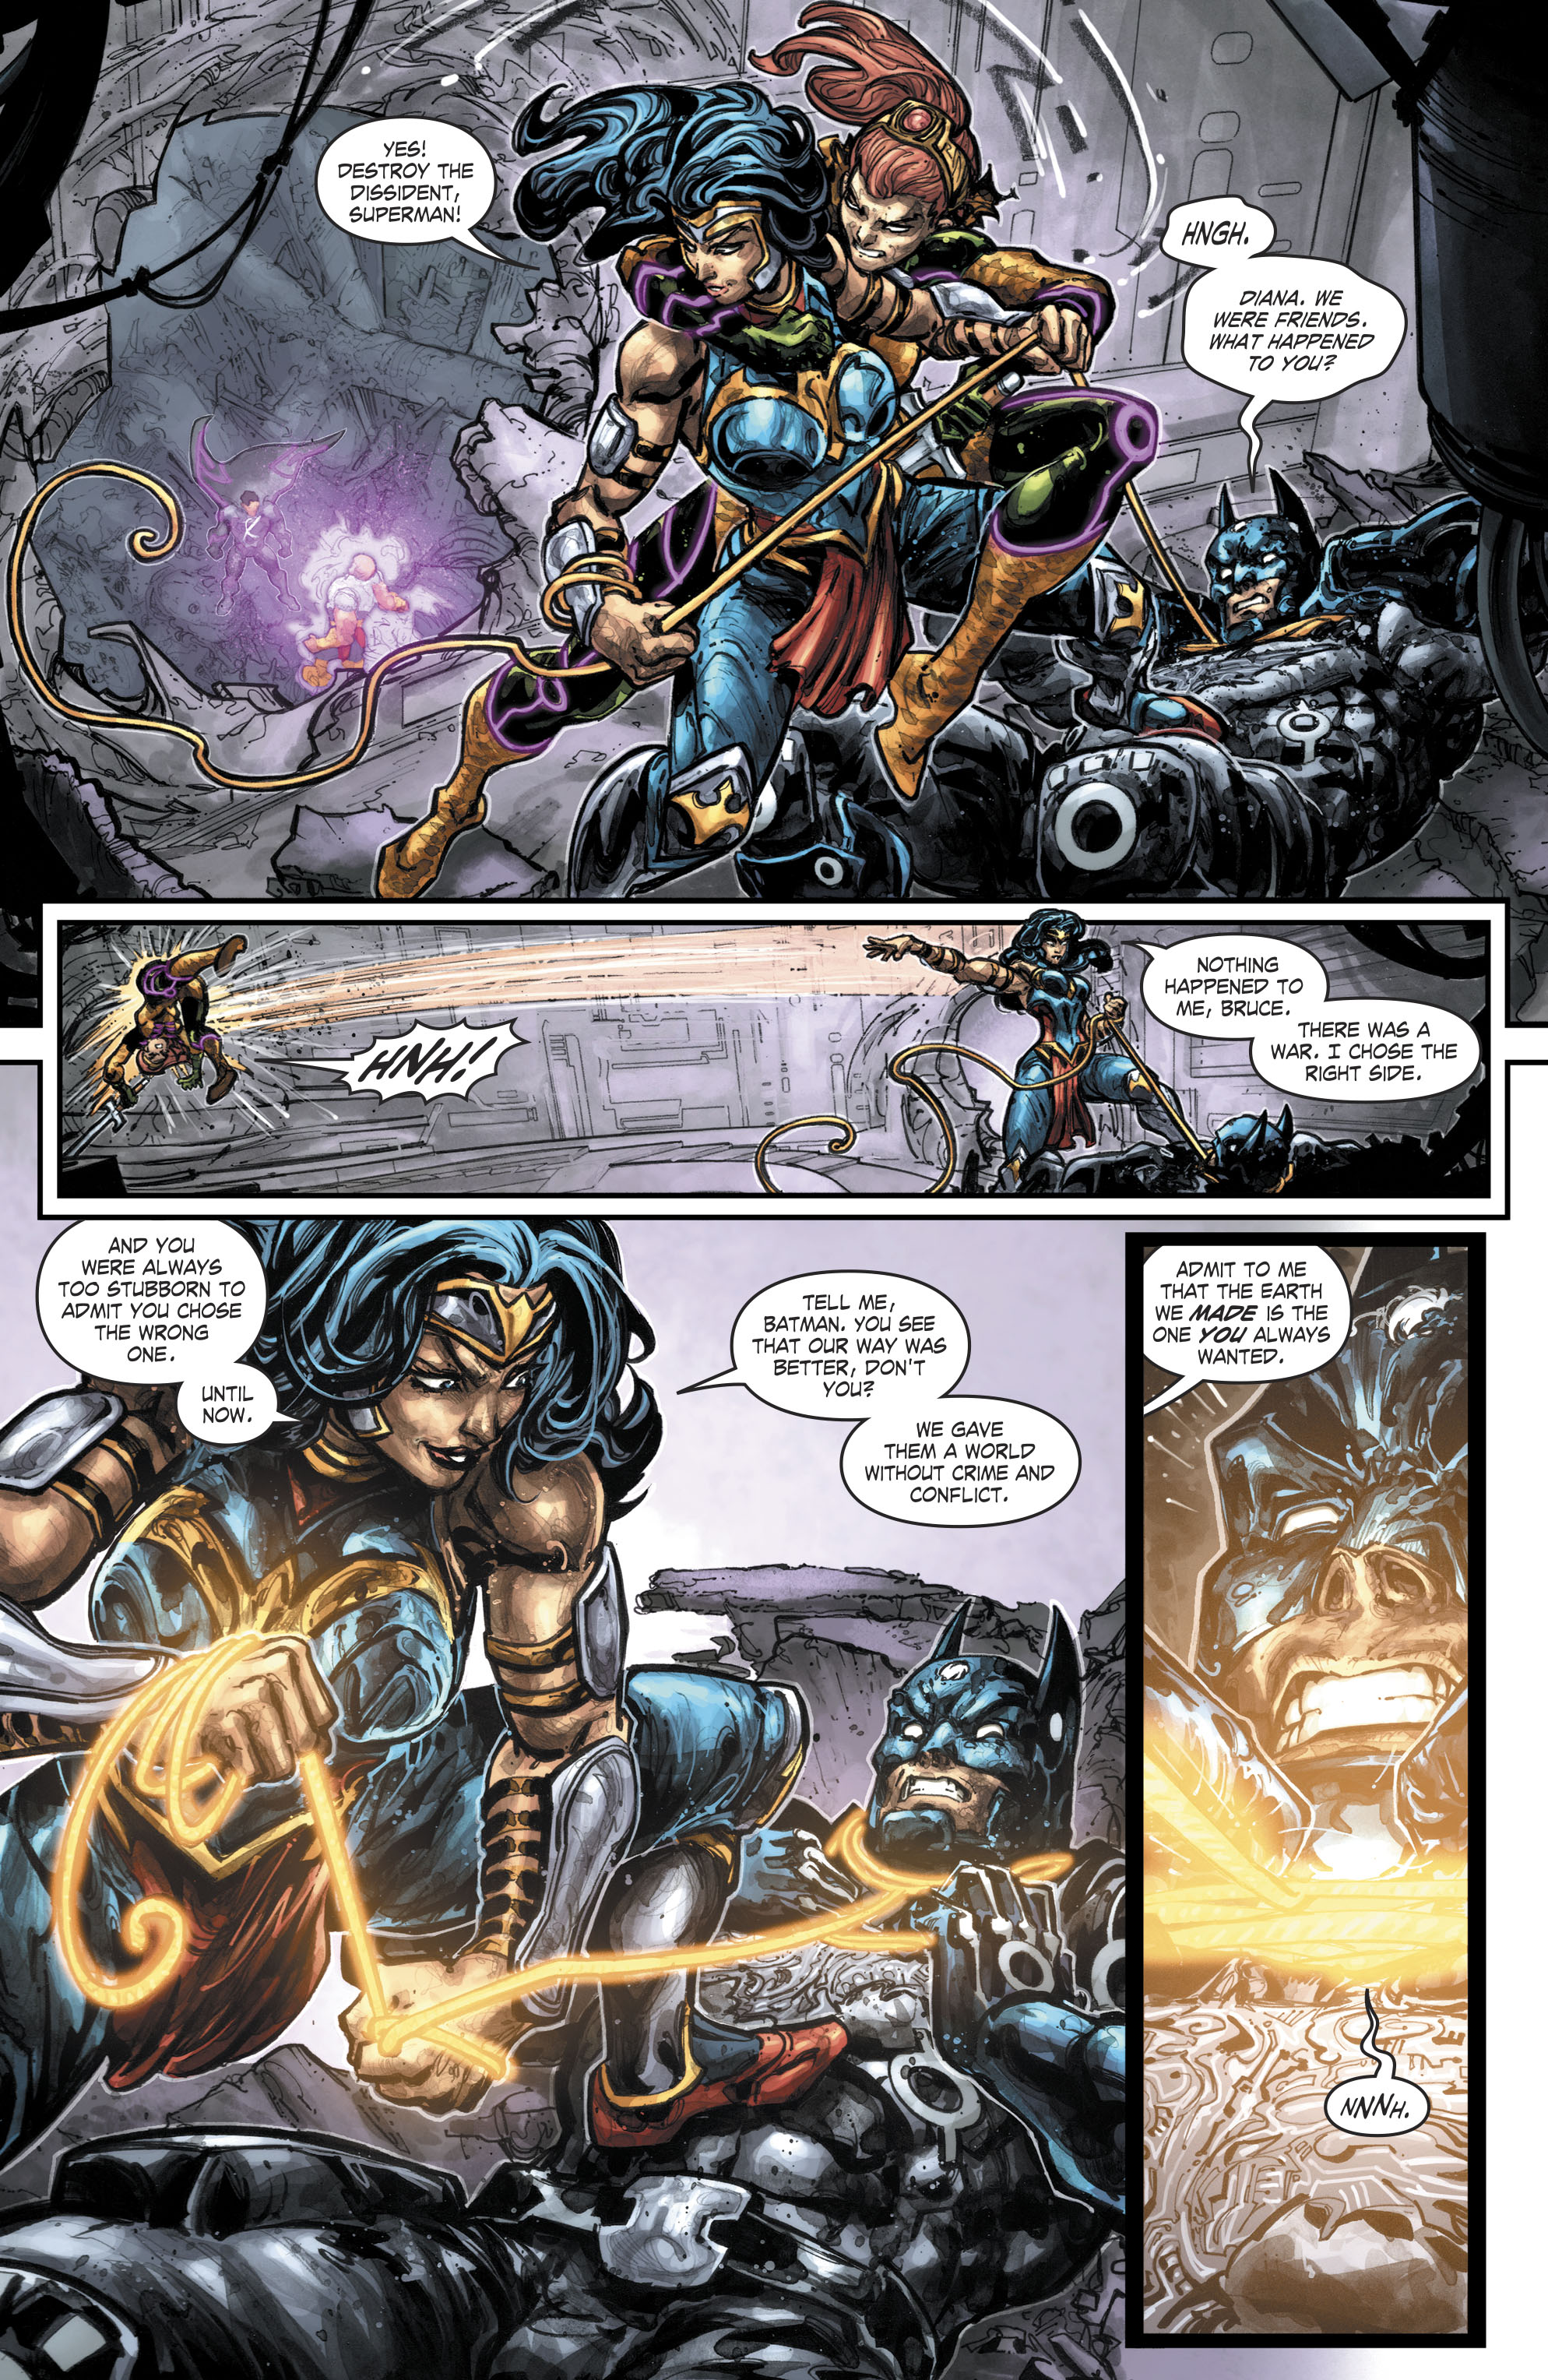 Injustice Vs Masters of the Universe 004 012